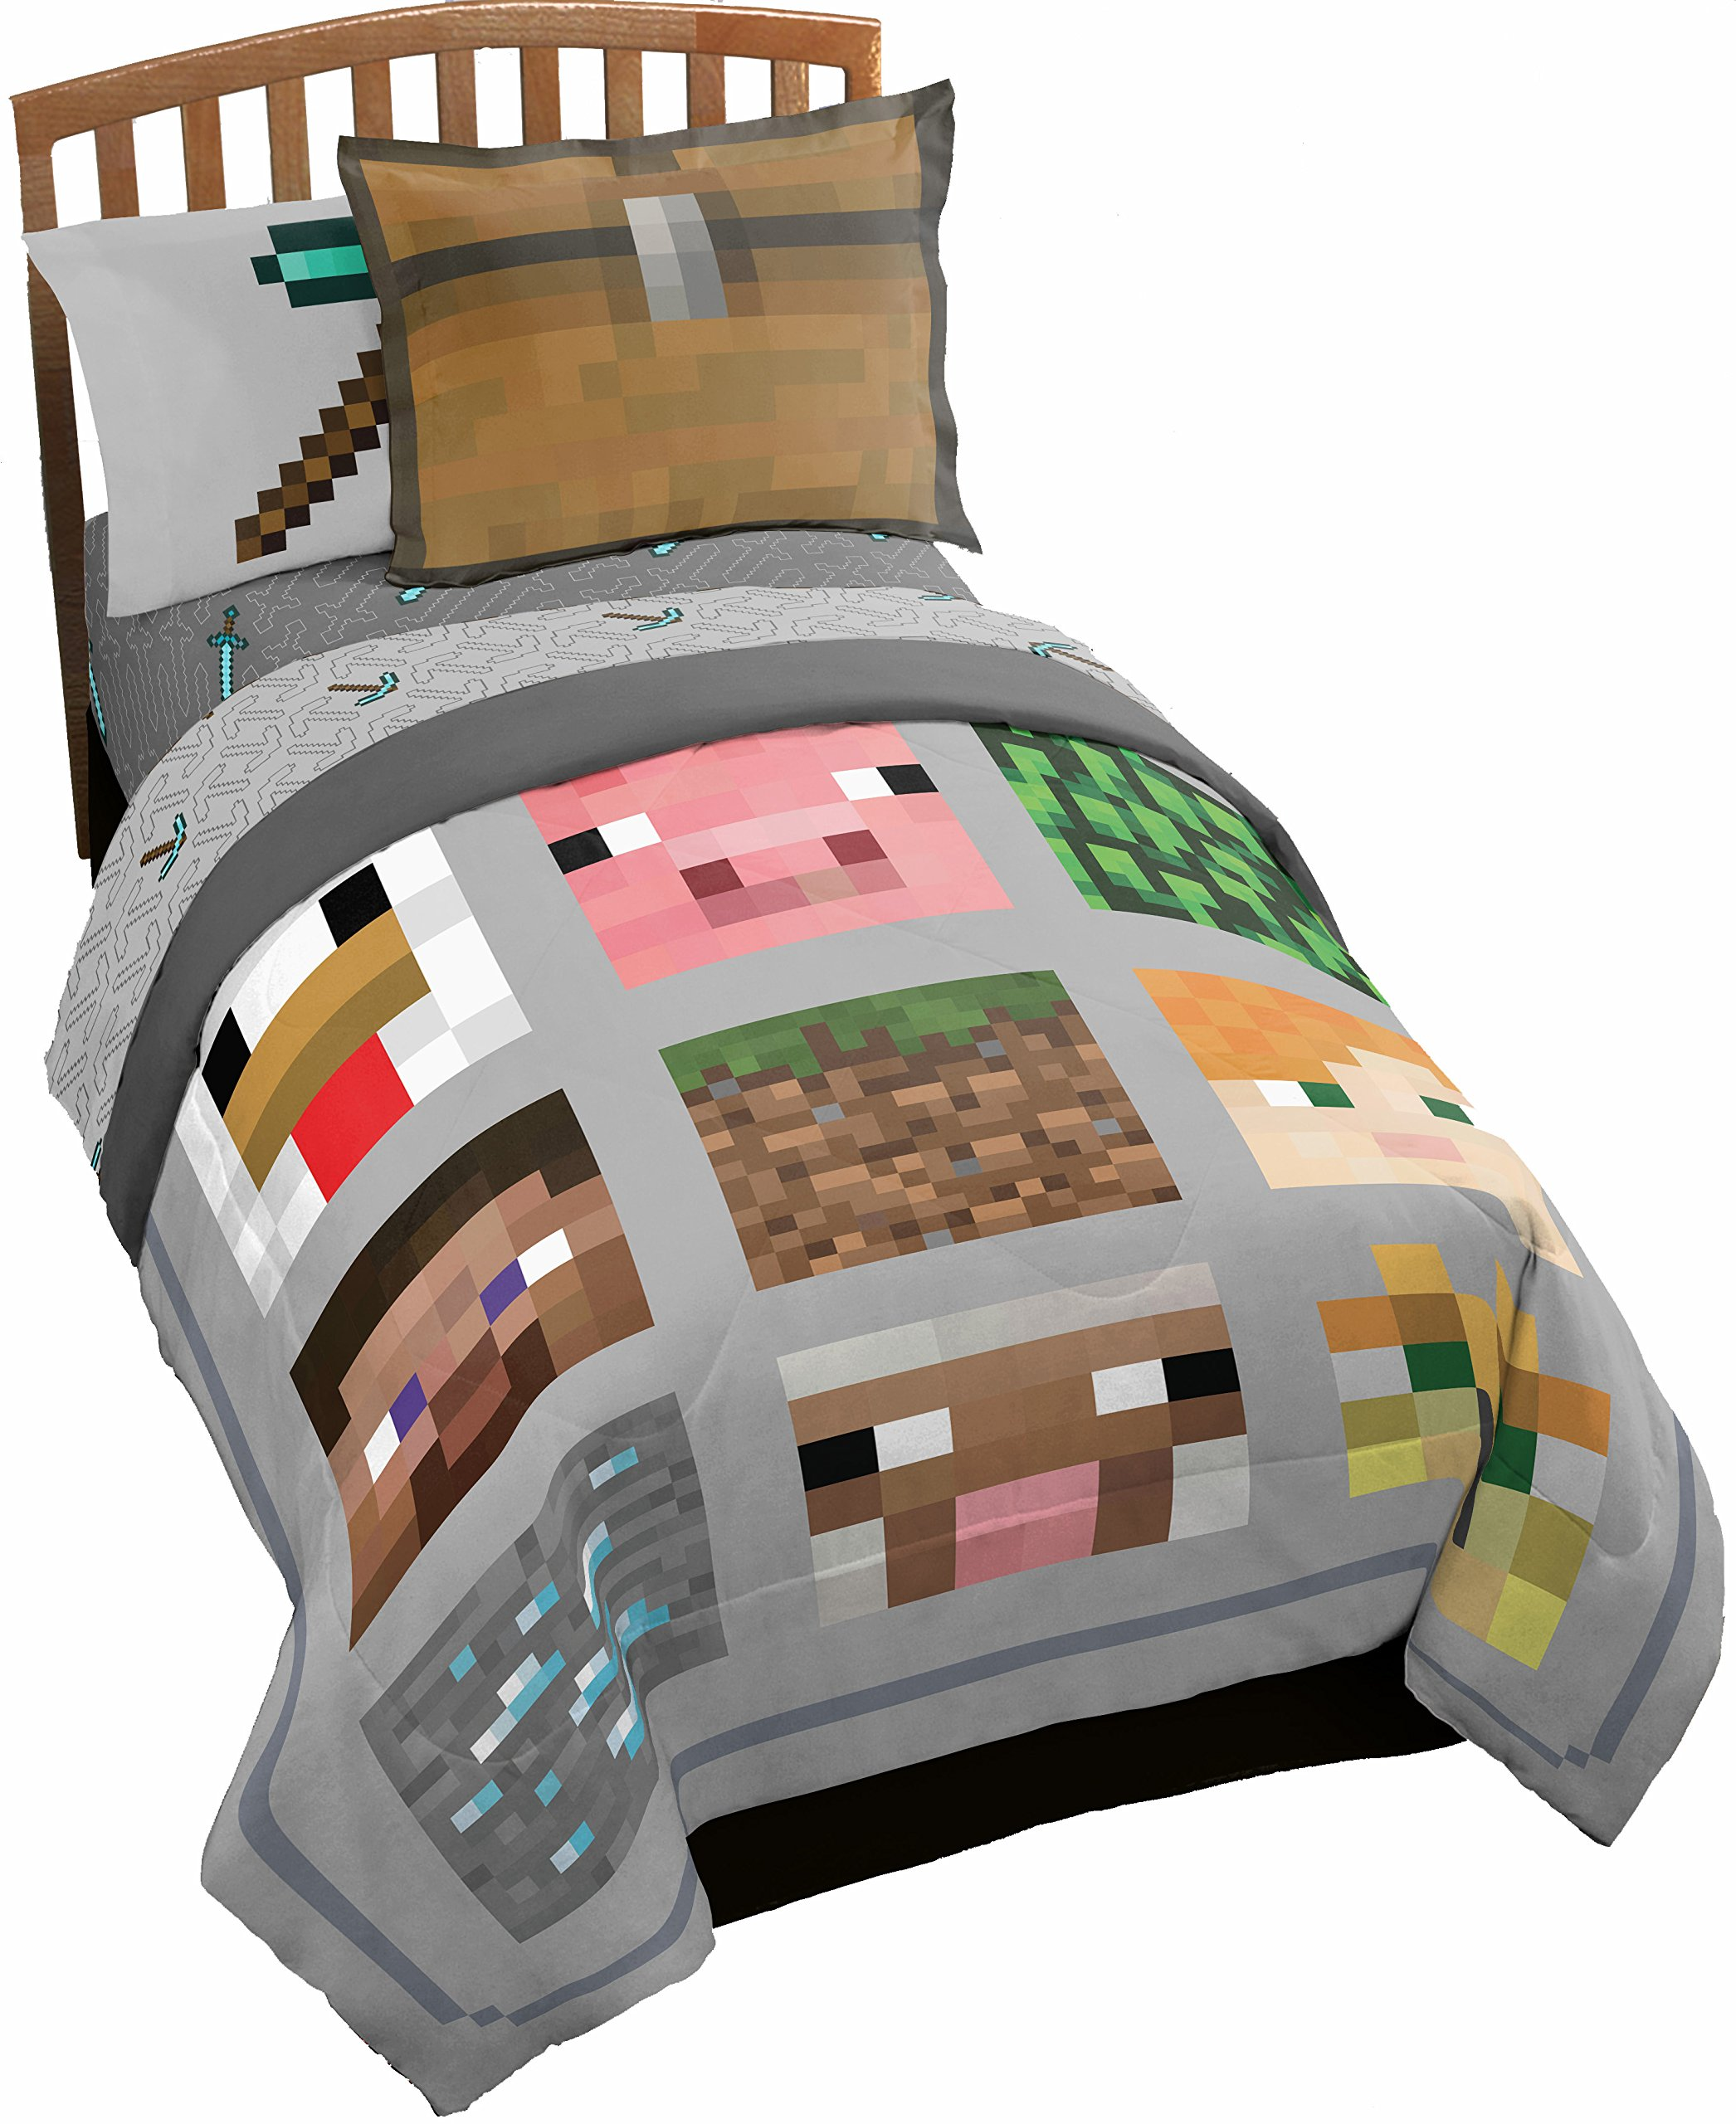 Jay Franco Minecraft Twin Quilt & Sham 2 Piece Set by Jay Franco